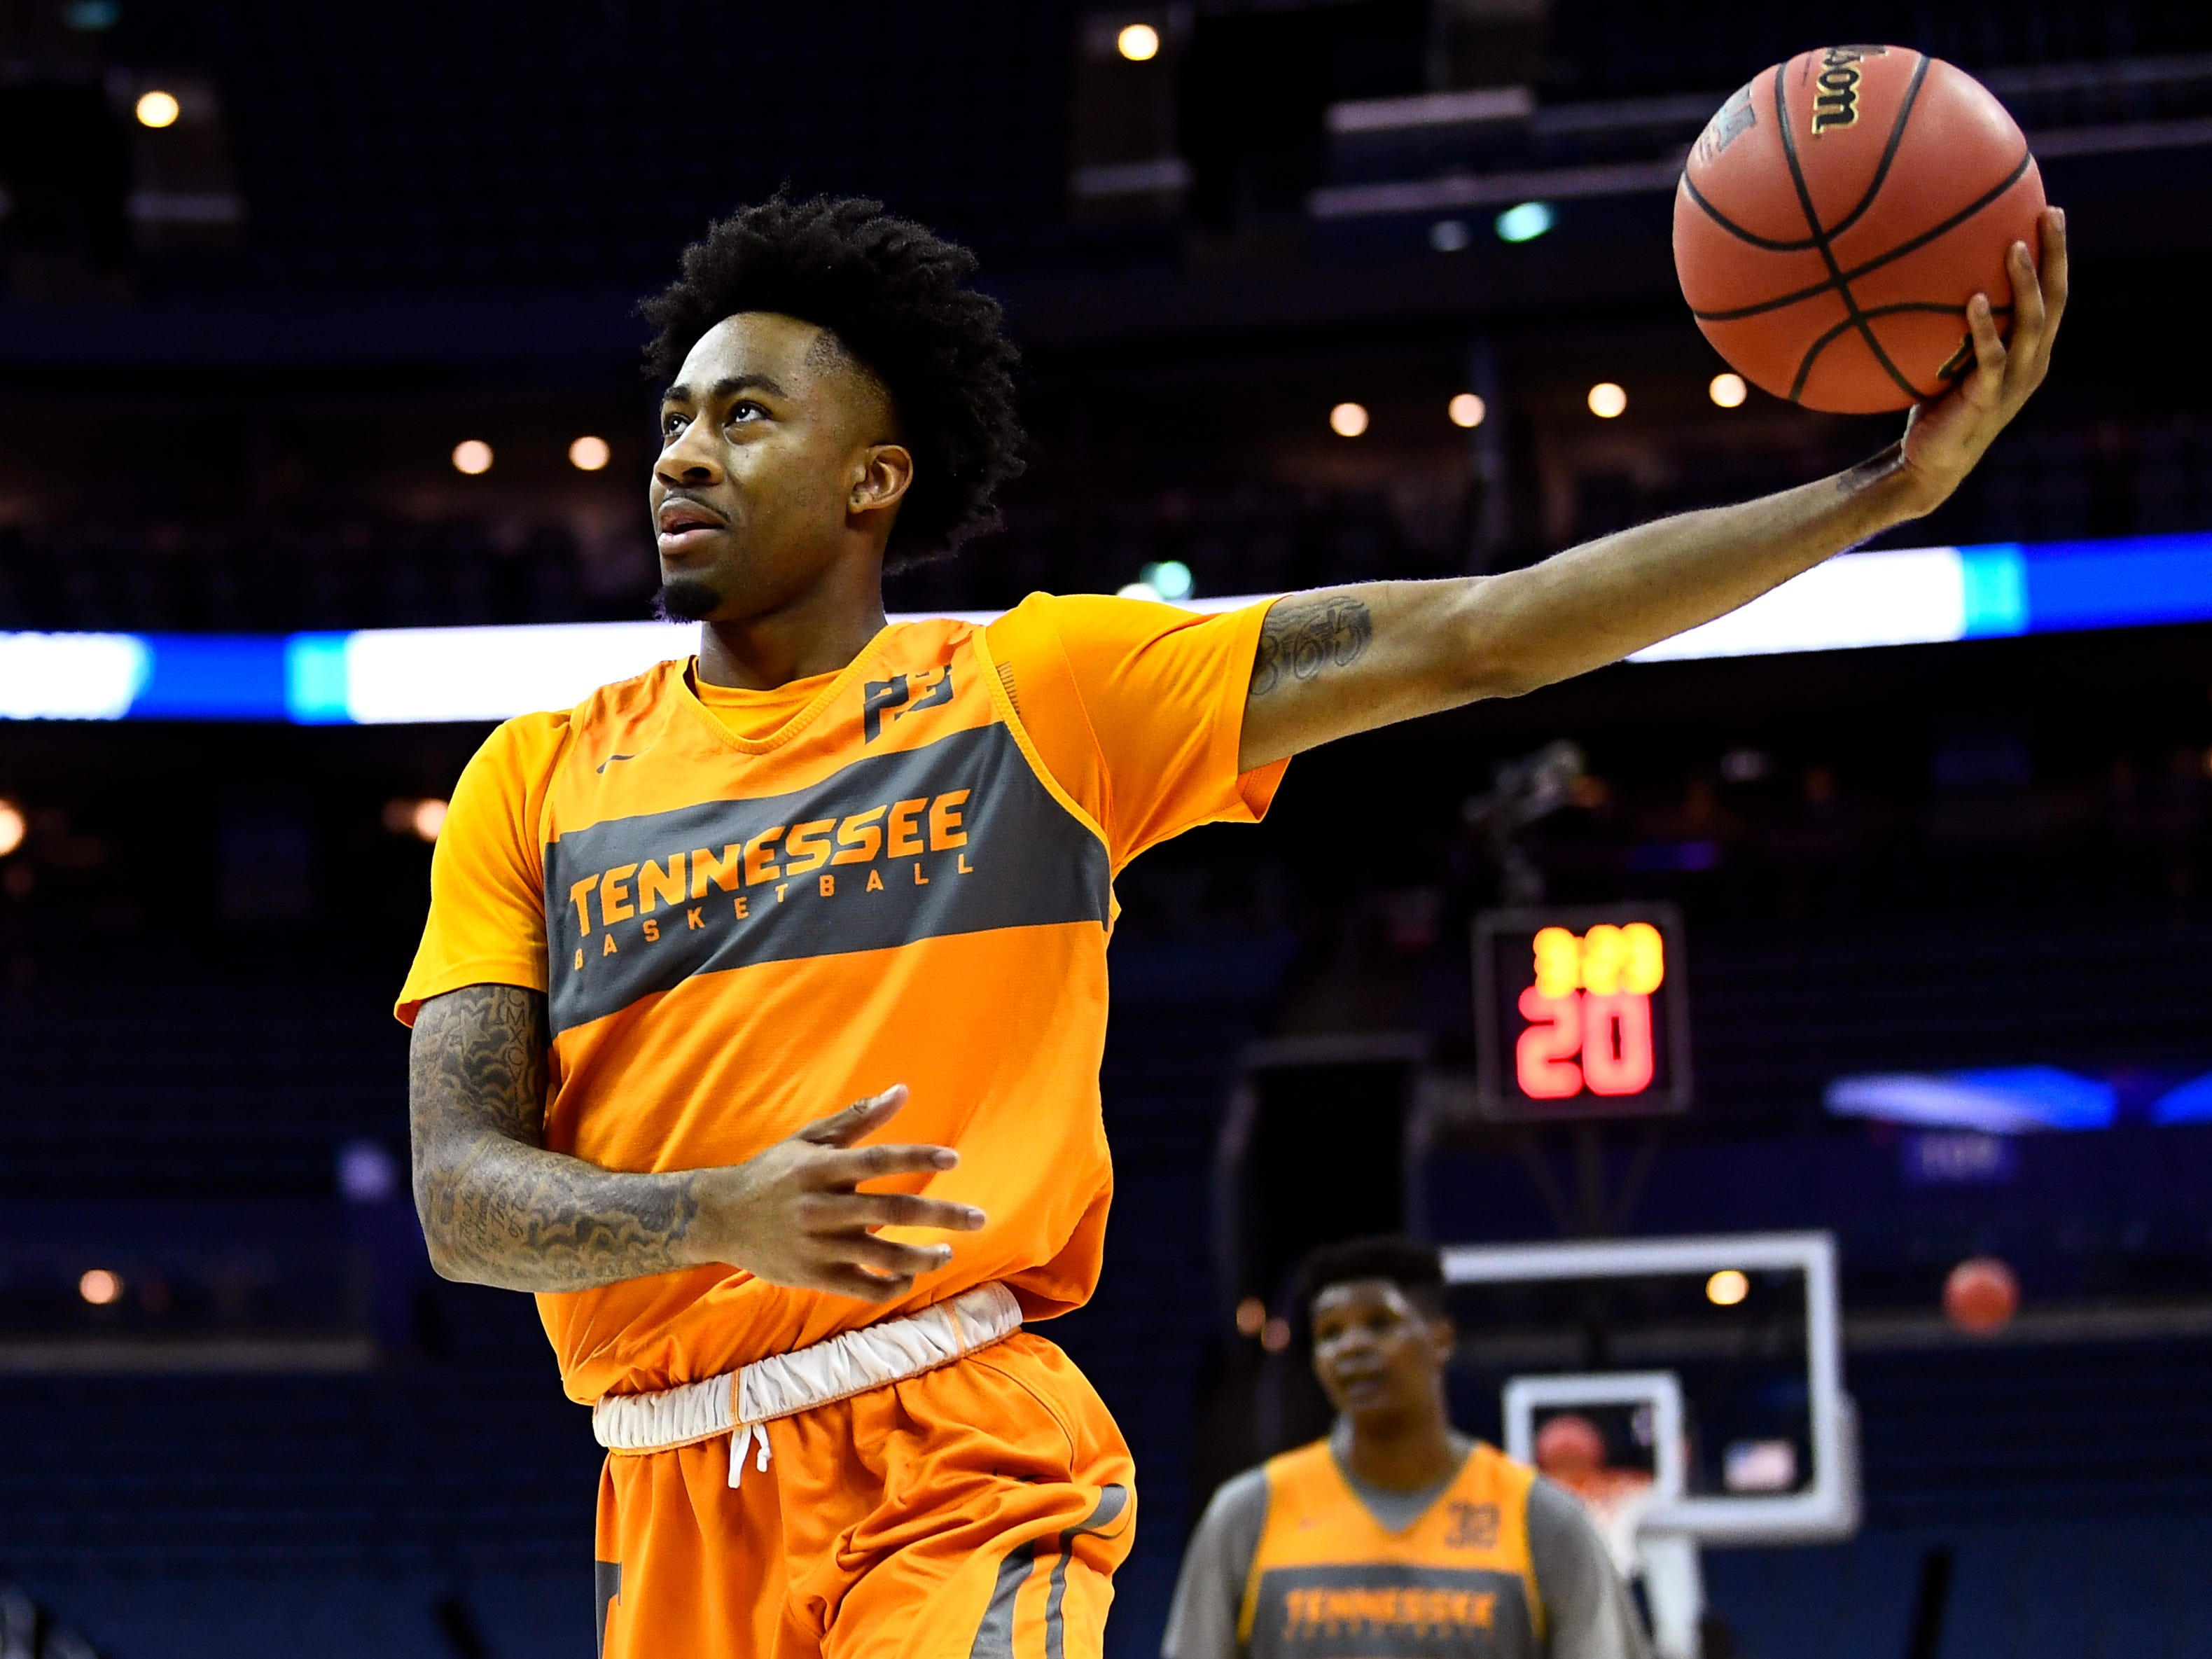 Tennessee guard Jordan Bowden (23) during Tennessee's practice on Thursday, March 21, 2019, before their first round NCAA Tournament game against Colgate at Nationwide Arena in Columbus, Ohio.